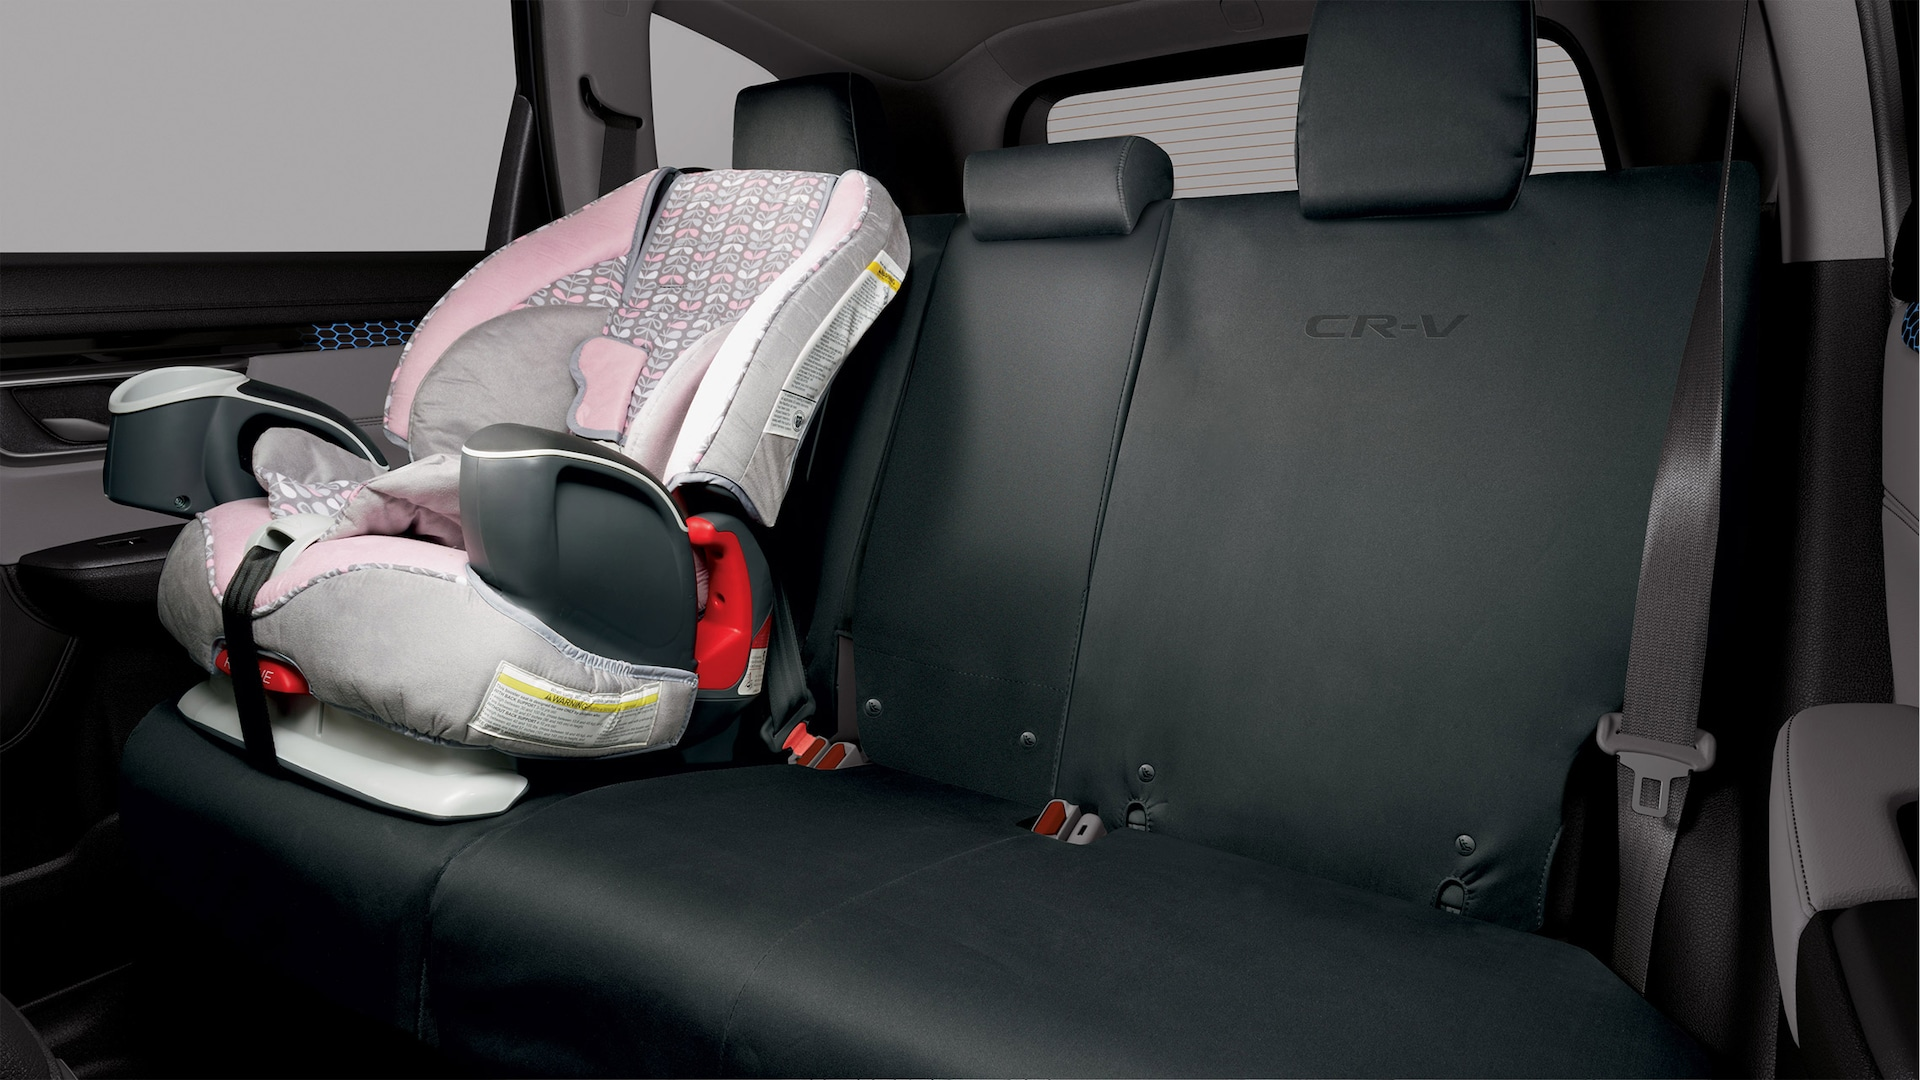 Interior view of 2021 Honda CR-V with Honda Genuine Accessory rear seat covers.